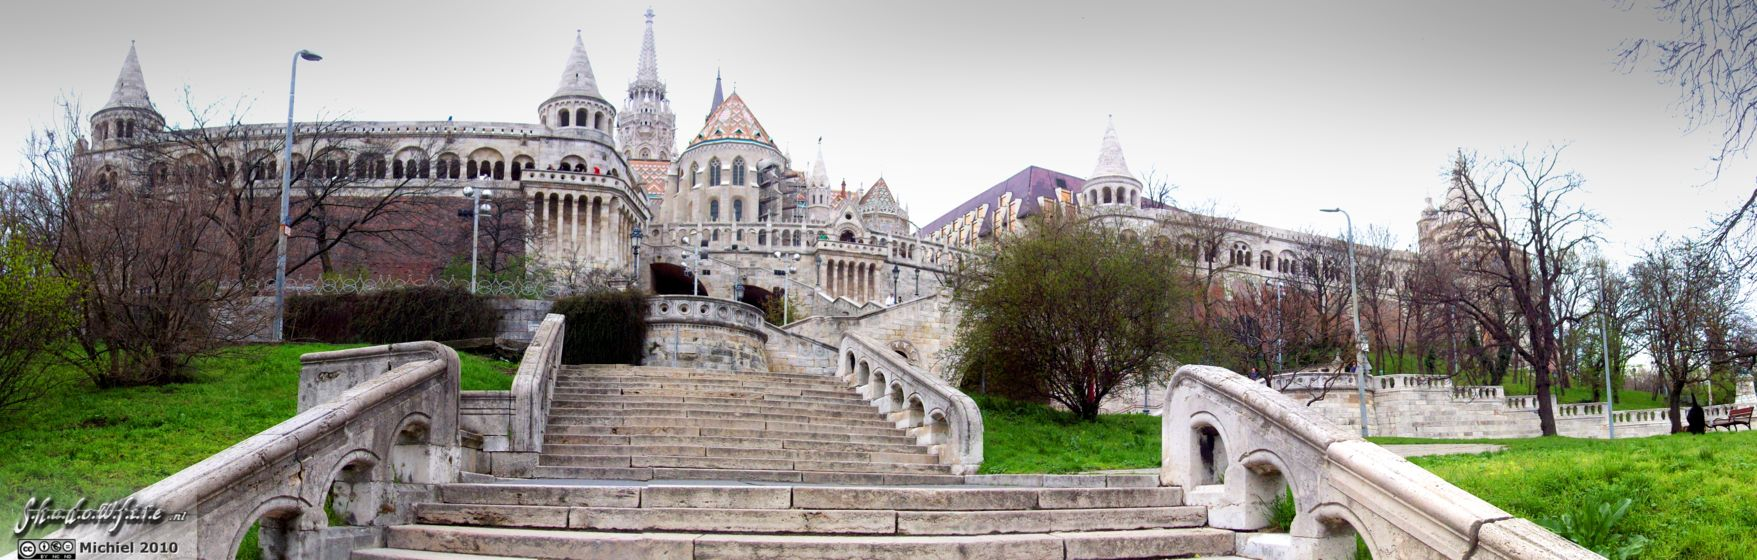 Fishermans Bastion panorama Fishermans Bastion, Budapest, Hungary, Budapest 2010,travel, photography,favorites, panoramas